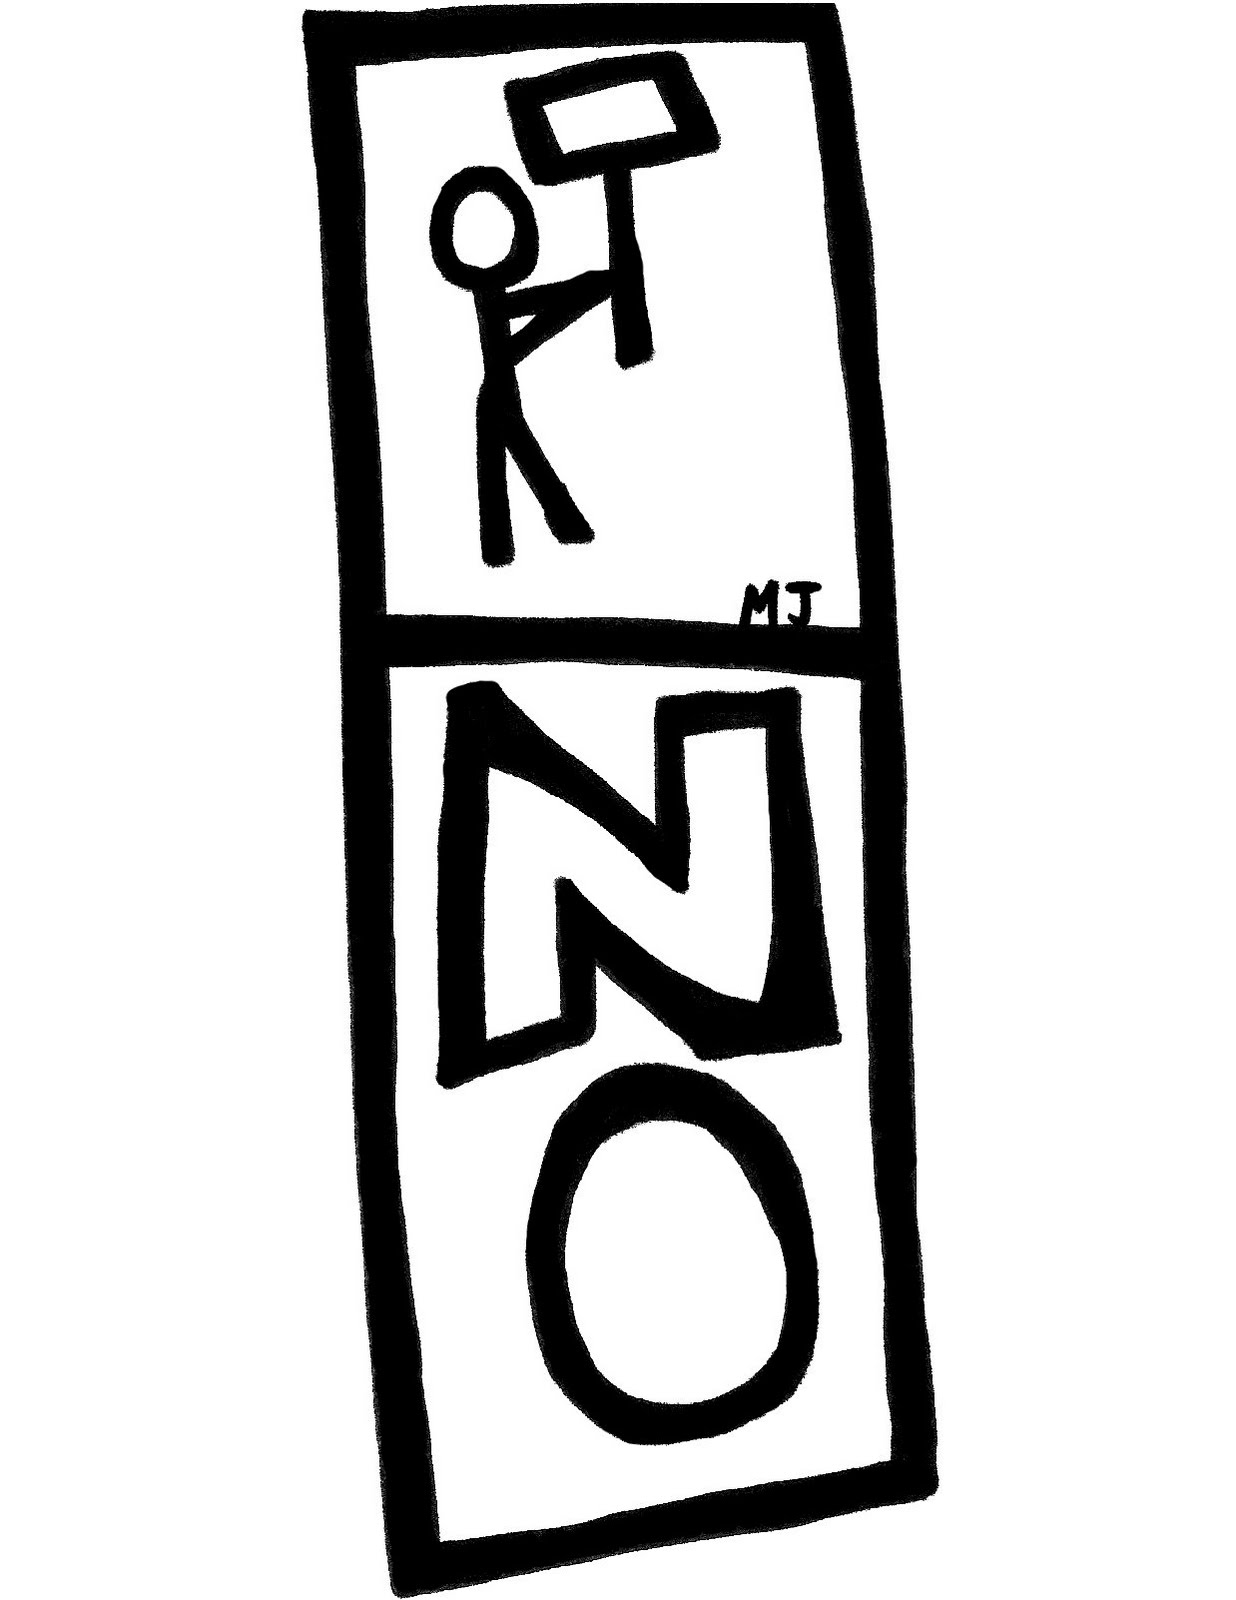 Another Symbol I Use In My Art Are Filmstrip Boxes With Various Items Or Symbols Pictures Have Combined These Two Components Into One Image